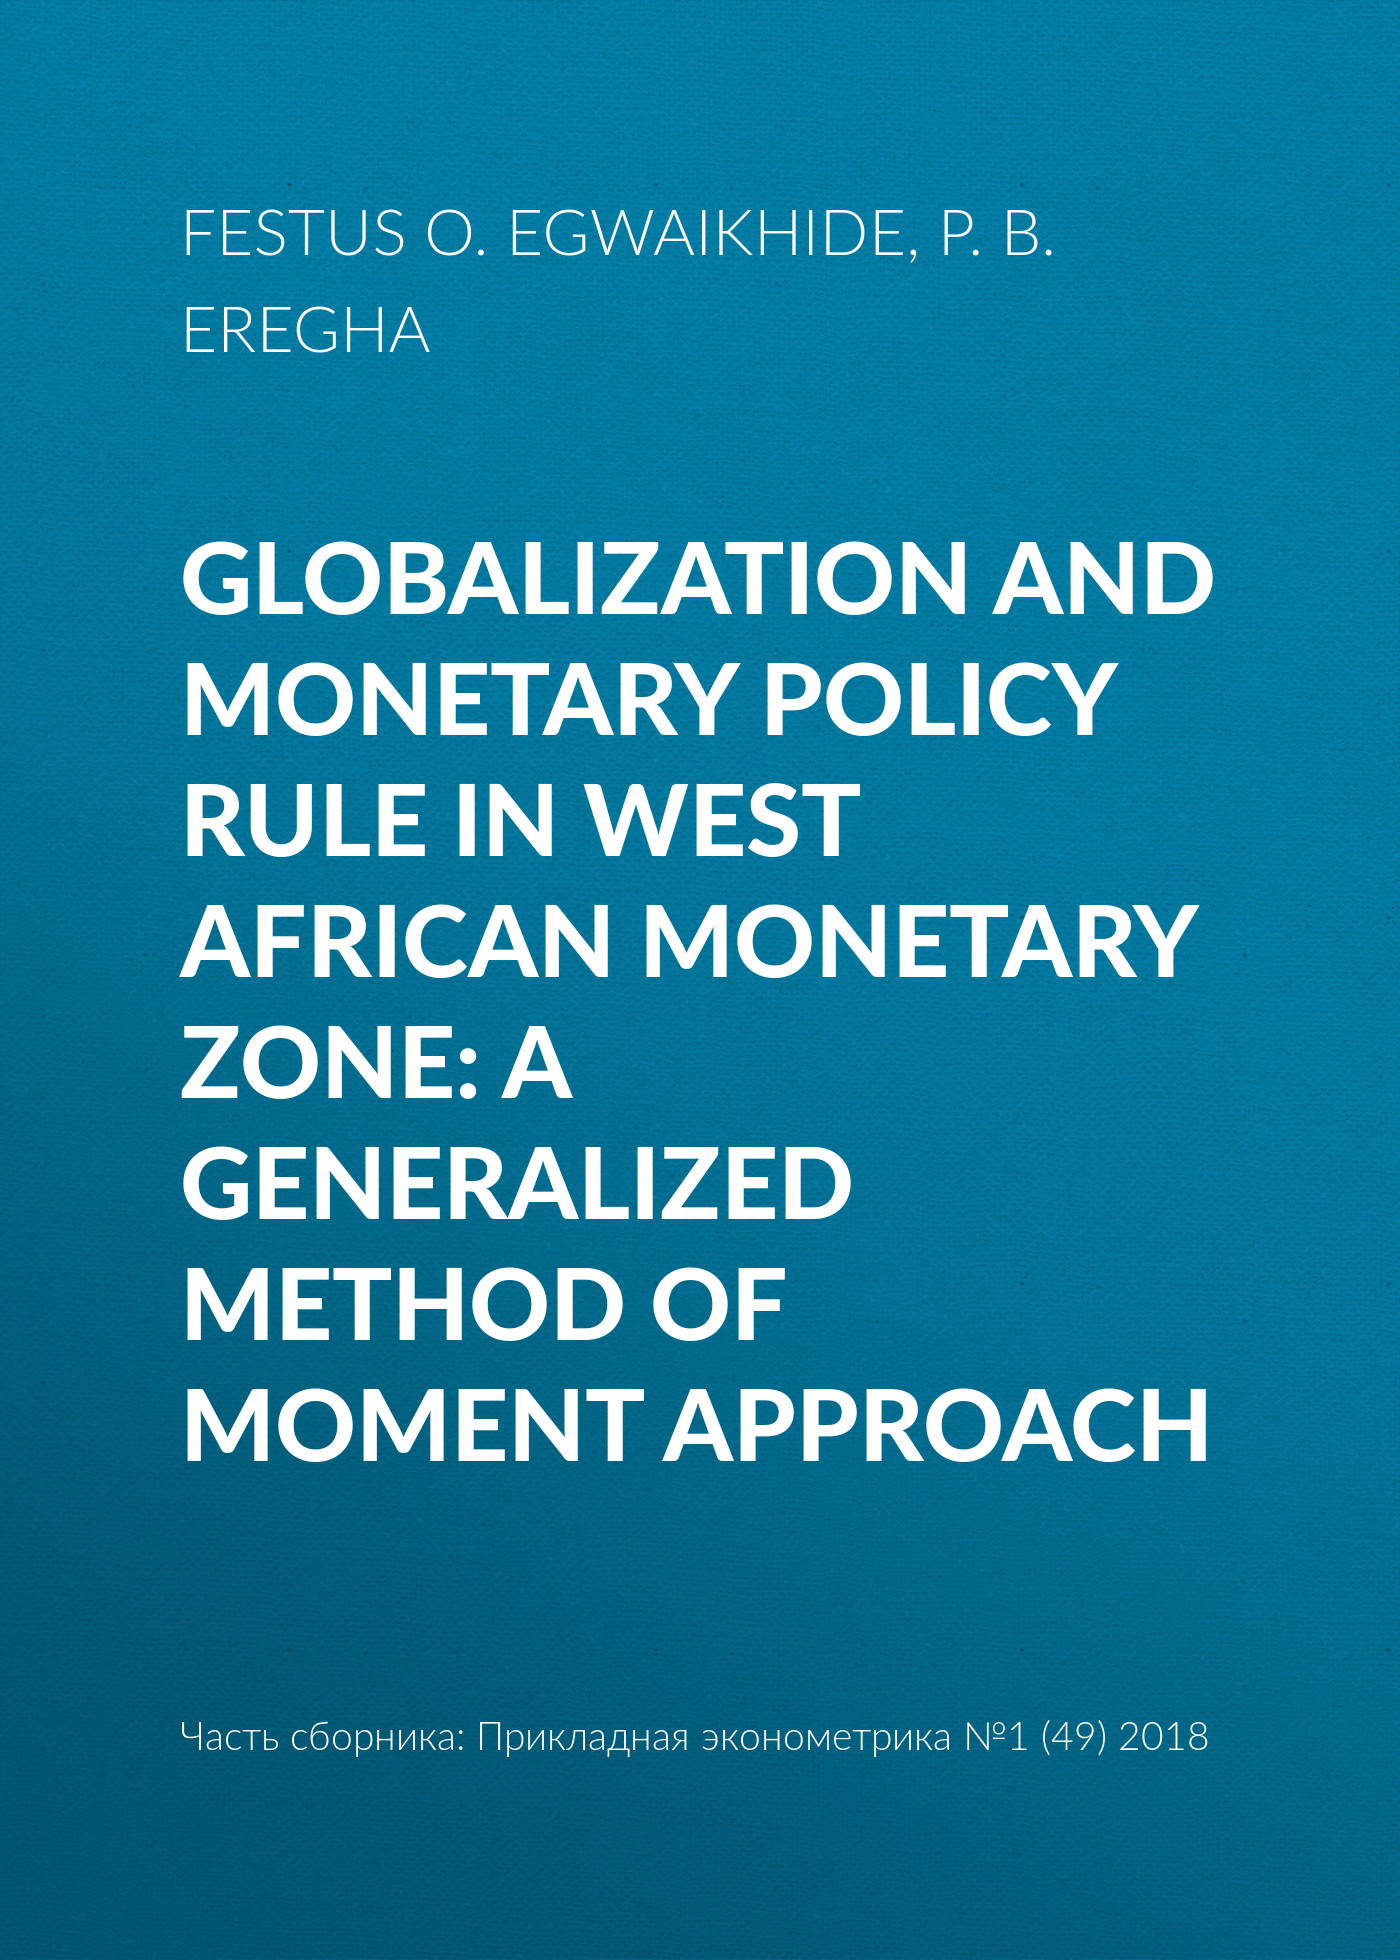 Festus O. Egwaikhide Globalization and monetary policy rule in West African Monetary Zone: A generalized method of moment approach sb 1070 a case study on state sponsored immigration policy